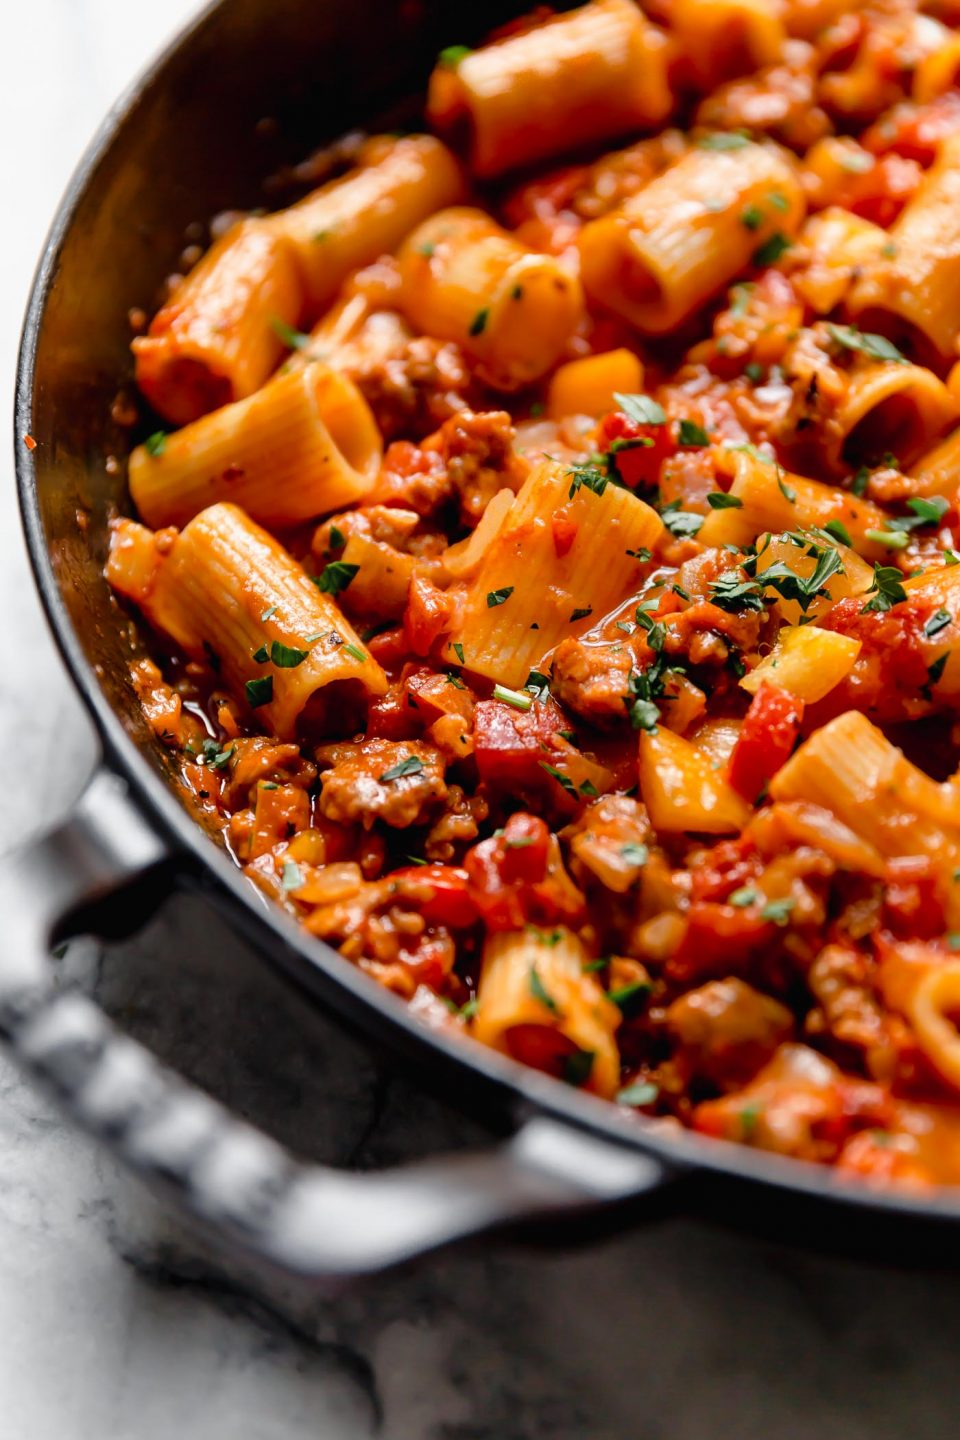 Italian sausage & peppers pasta in a large Staub skillet, topped with fresh parsley. The skillet is sitting on a white marble surface.